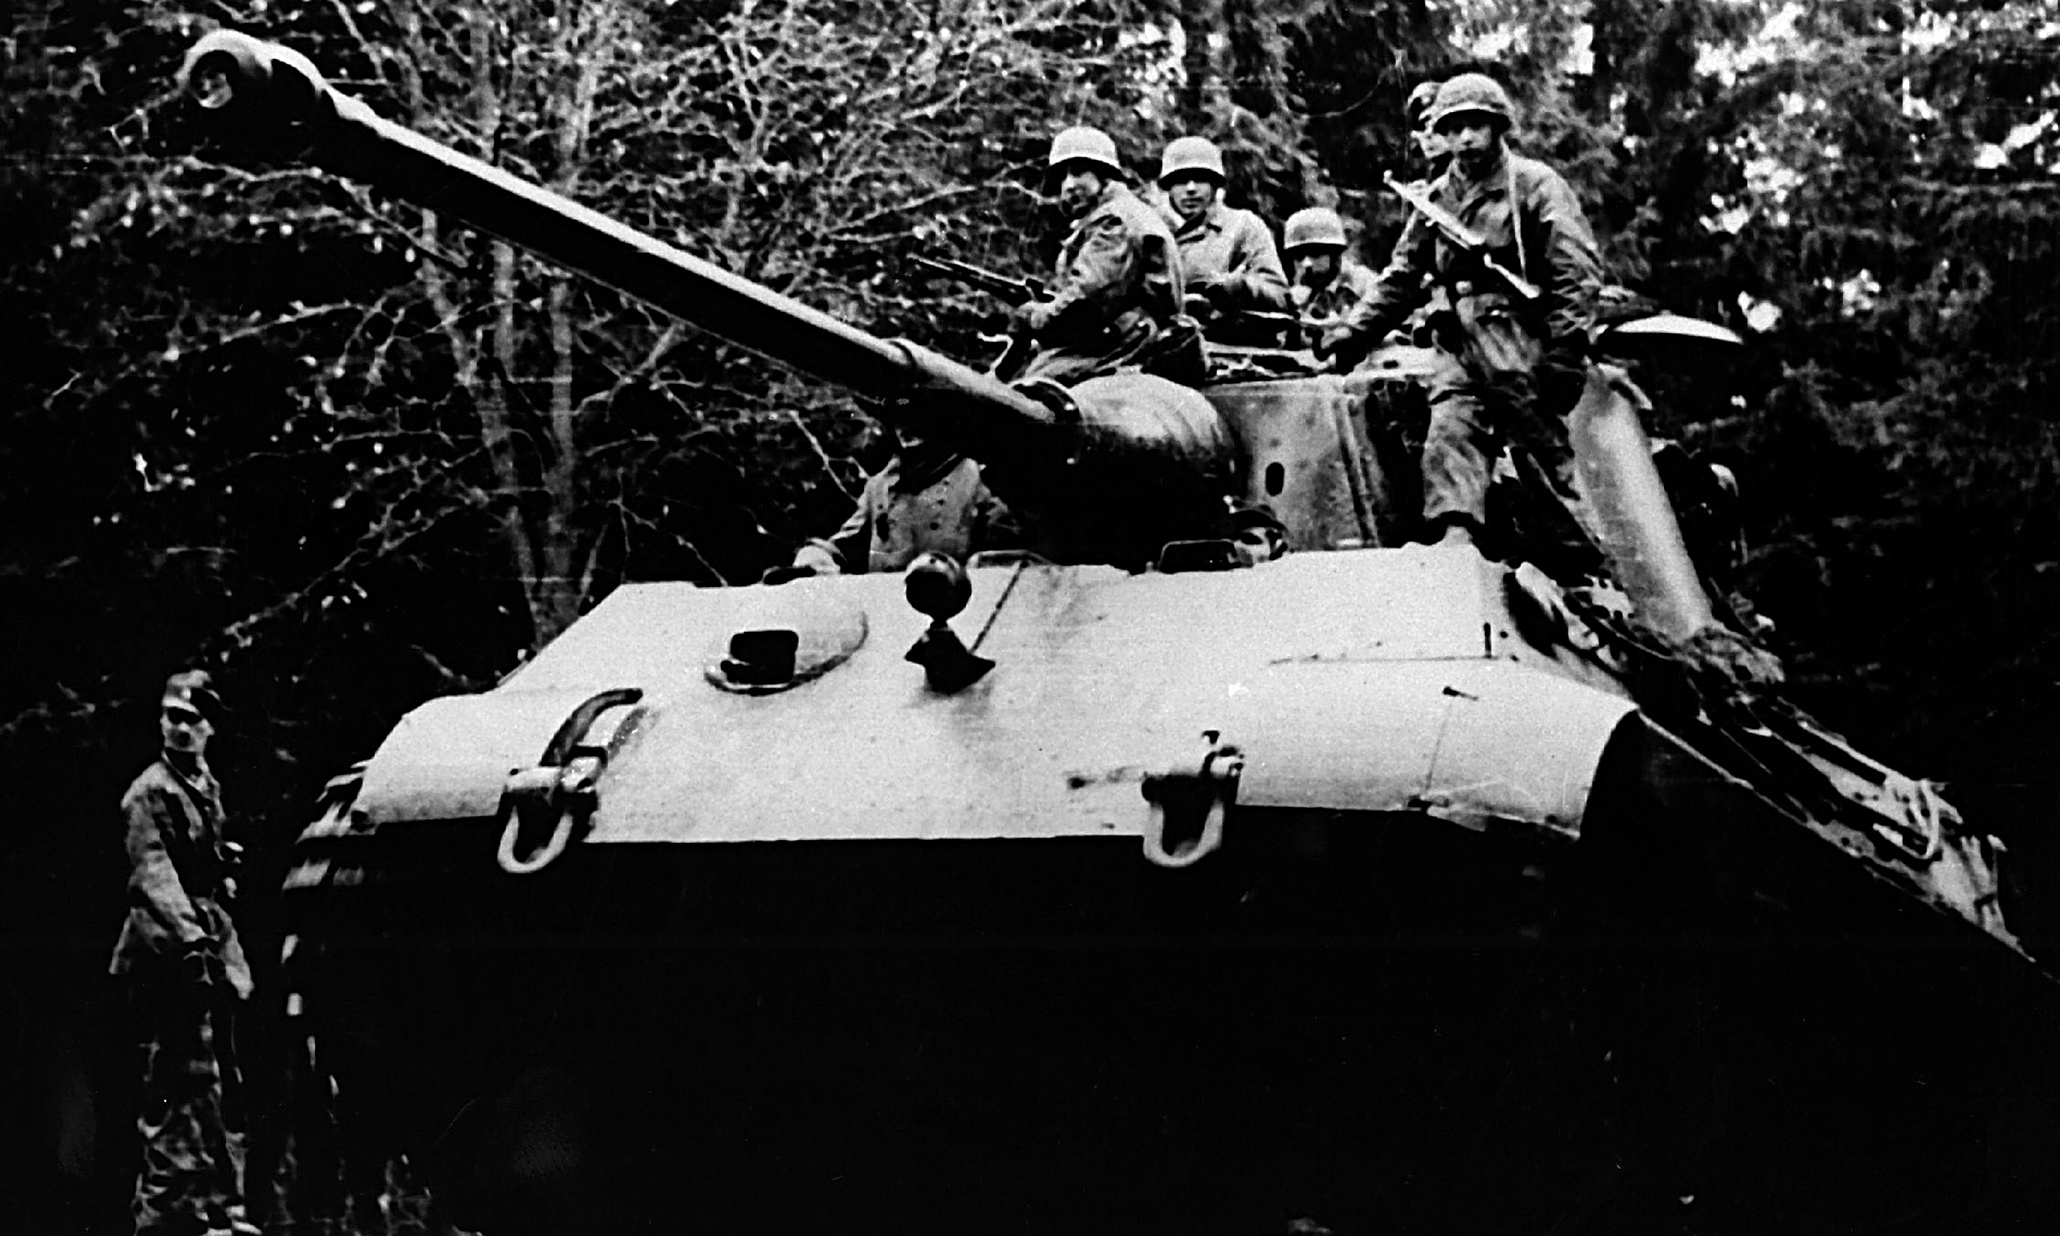 Ardennes 1944 review – Antony Beevor's gripping account of Nazis' last gamble